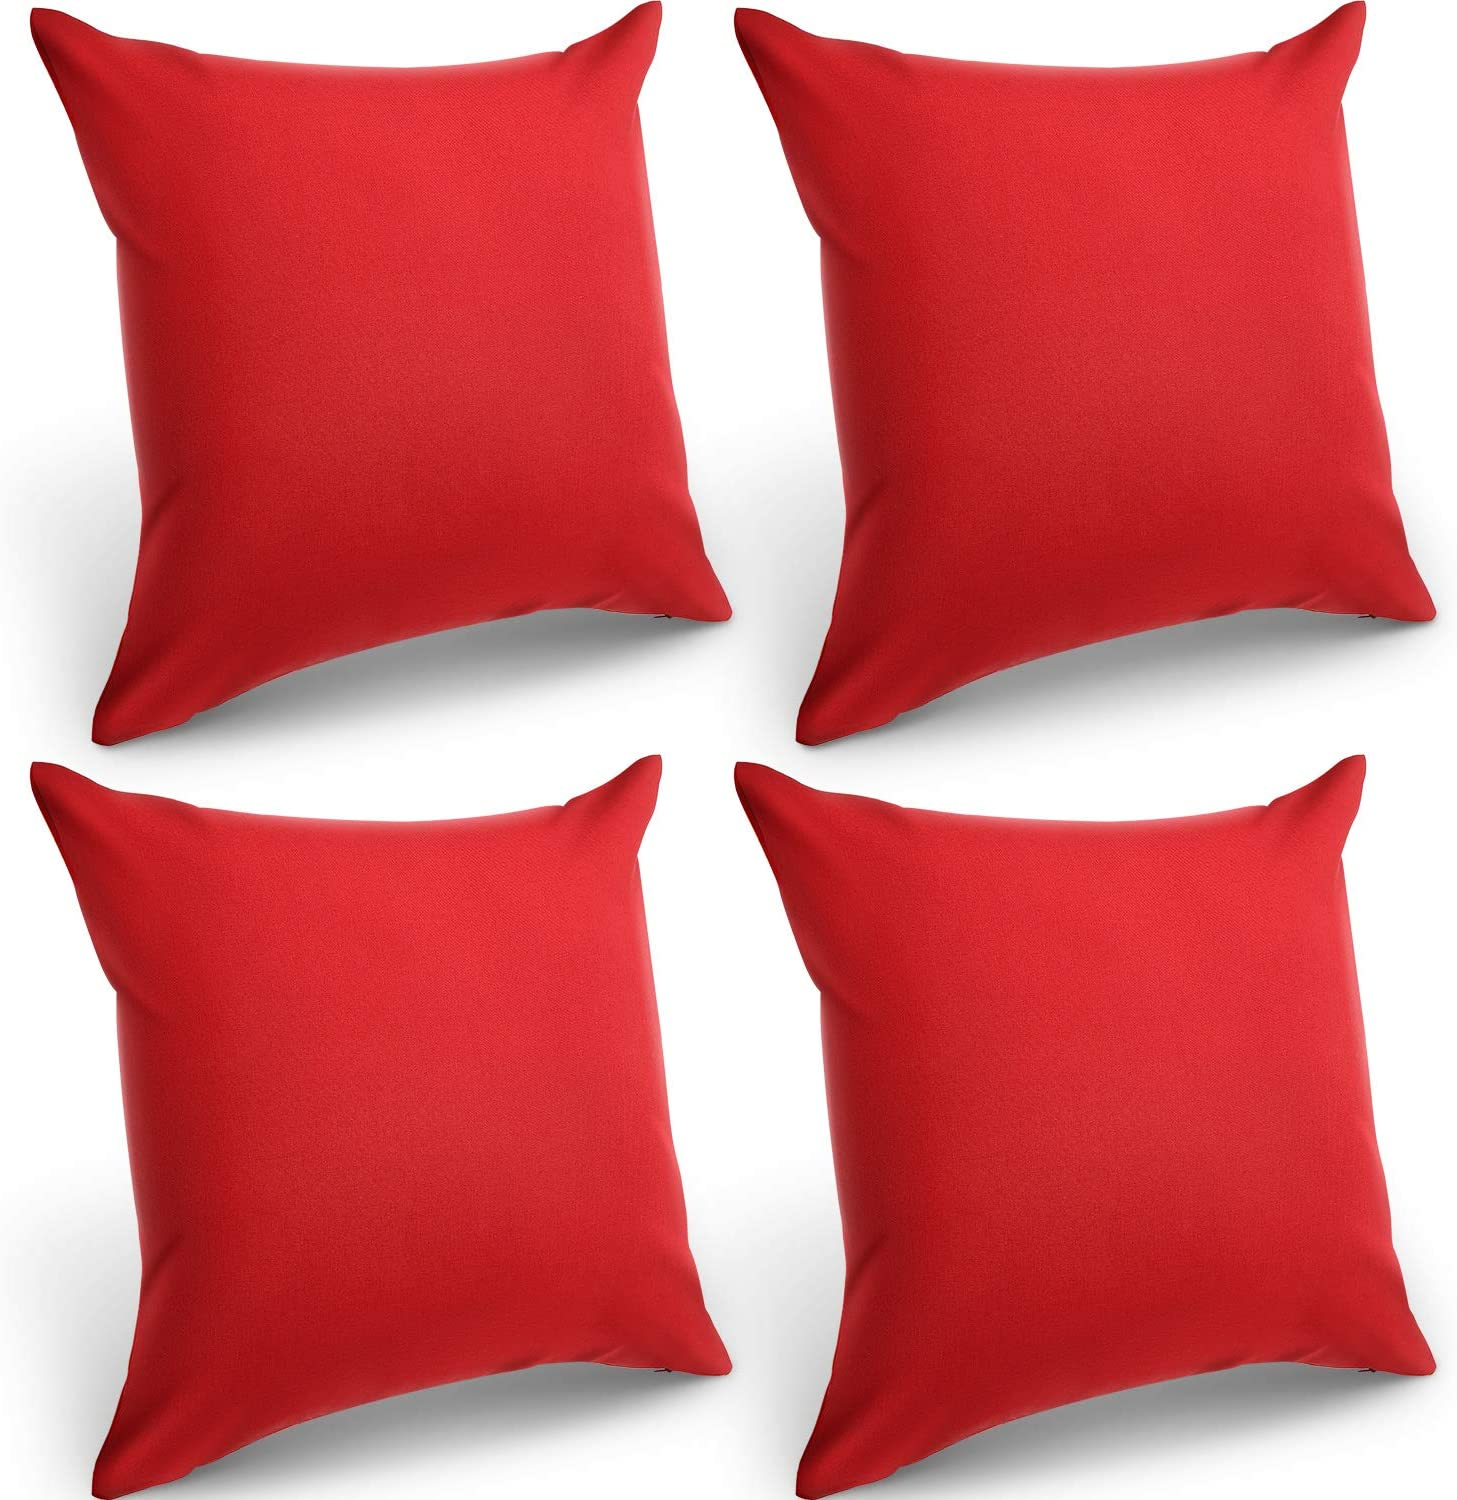 4 Packs Decorative Outdoor Waterproof Throw Pillow Covers, Square Garden Cushion Case, PU Coating Pillow Shell for Couch, Bed, Patio, Sofa, Tent and Balcony (Red, 18 x 18 Inches)